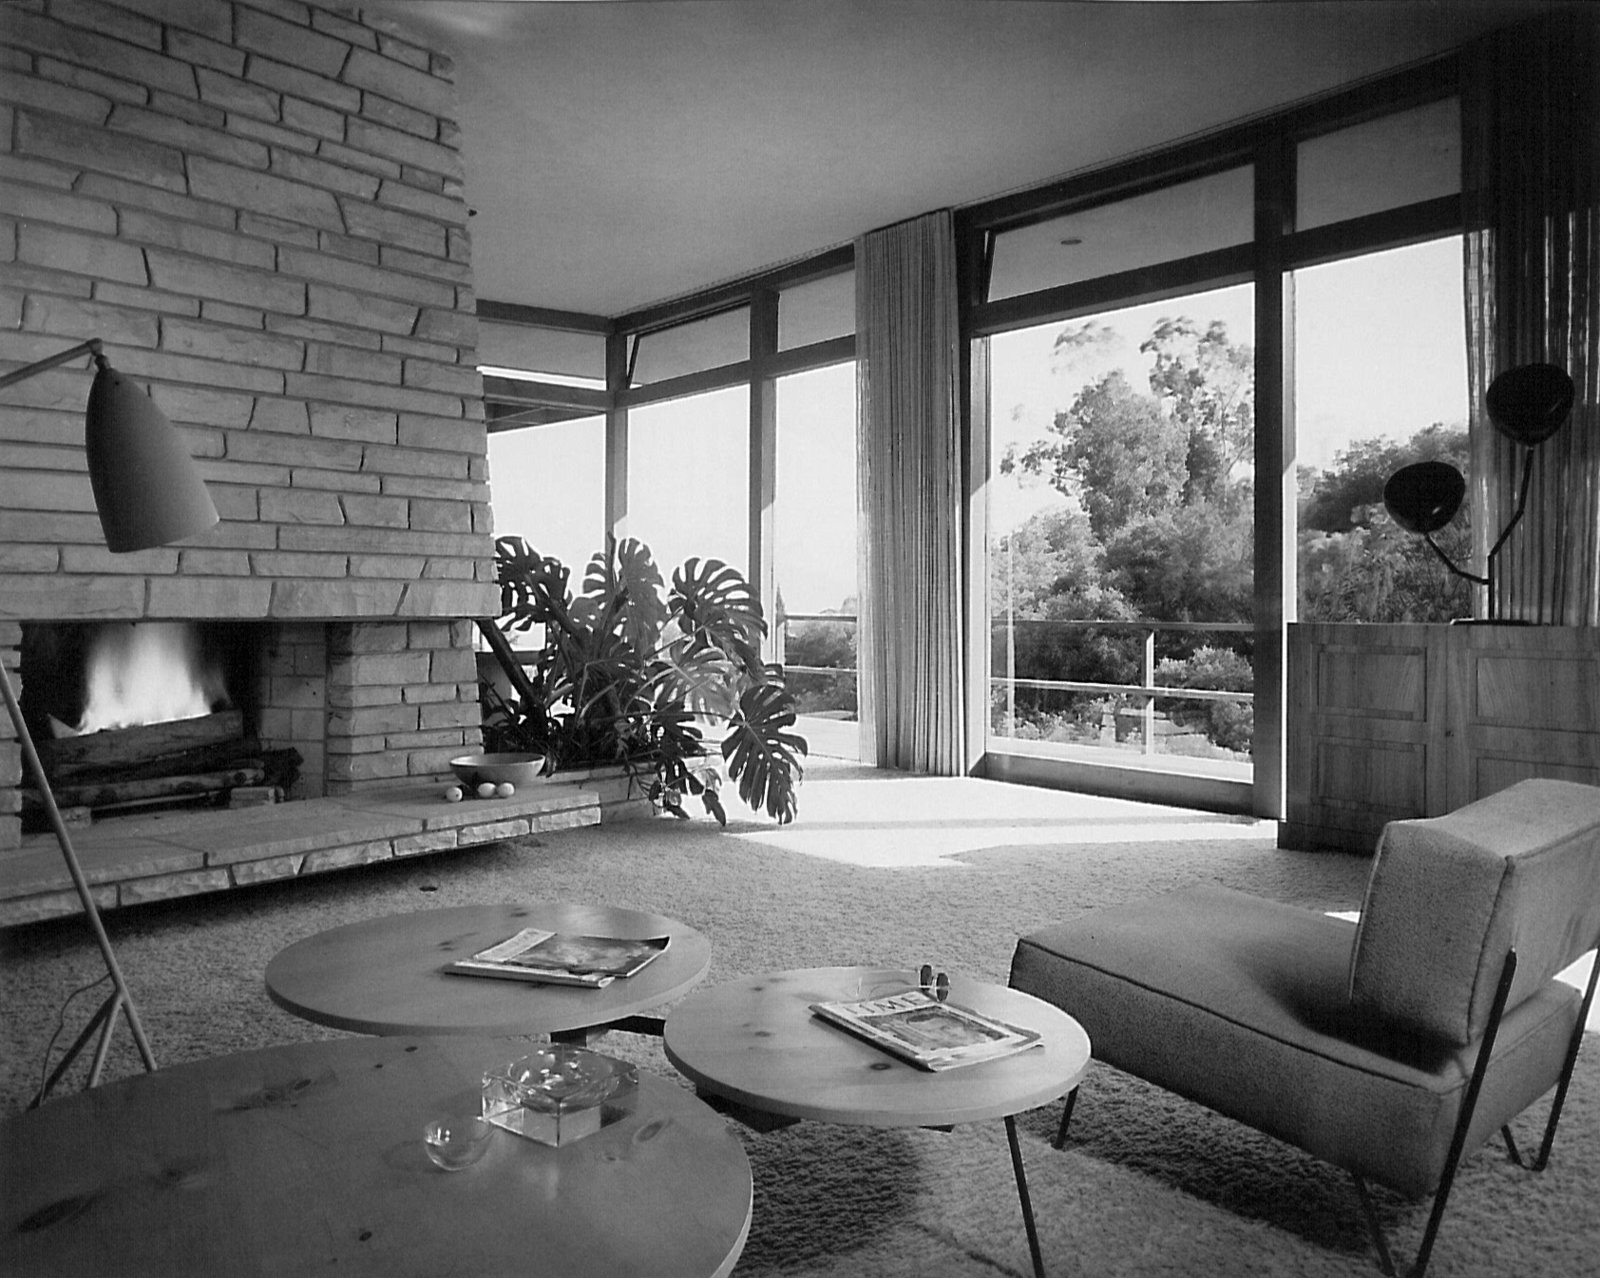 Gretta Grossman's work in the interior of the Backus house in Los Angeles in 1950, the Grasshopper lamp prominent in the foreground. Plants played an integral part in Grossman's designs, often serving as room dividers in the open plans of her interiors. Photograph by Donald J. Higgins.  Photo 1 of 8 in Design Icon: Greta Grossman